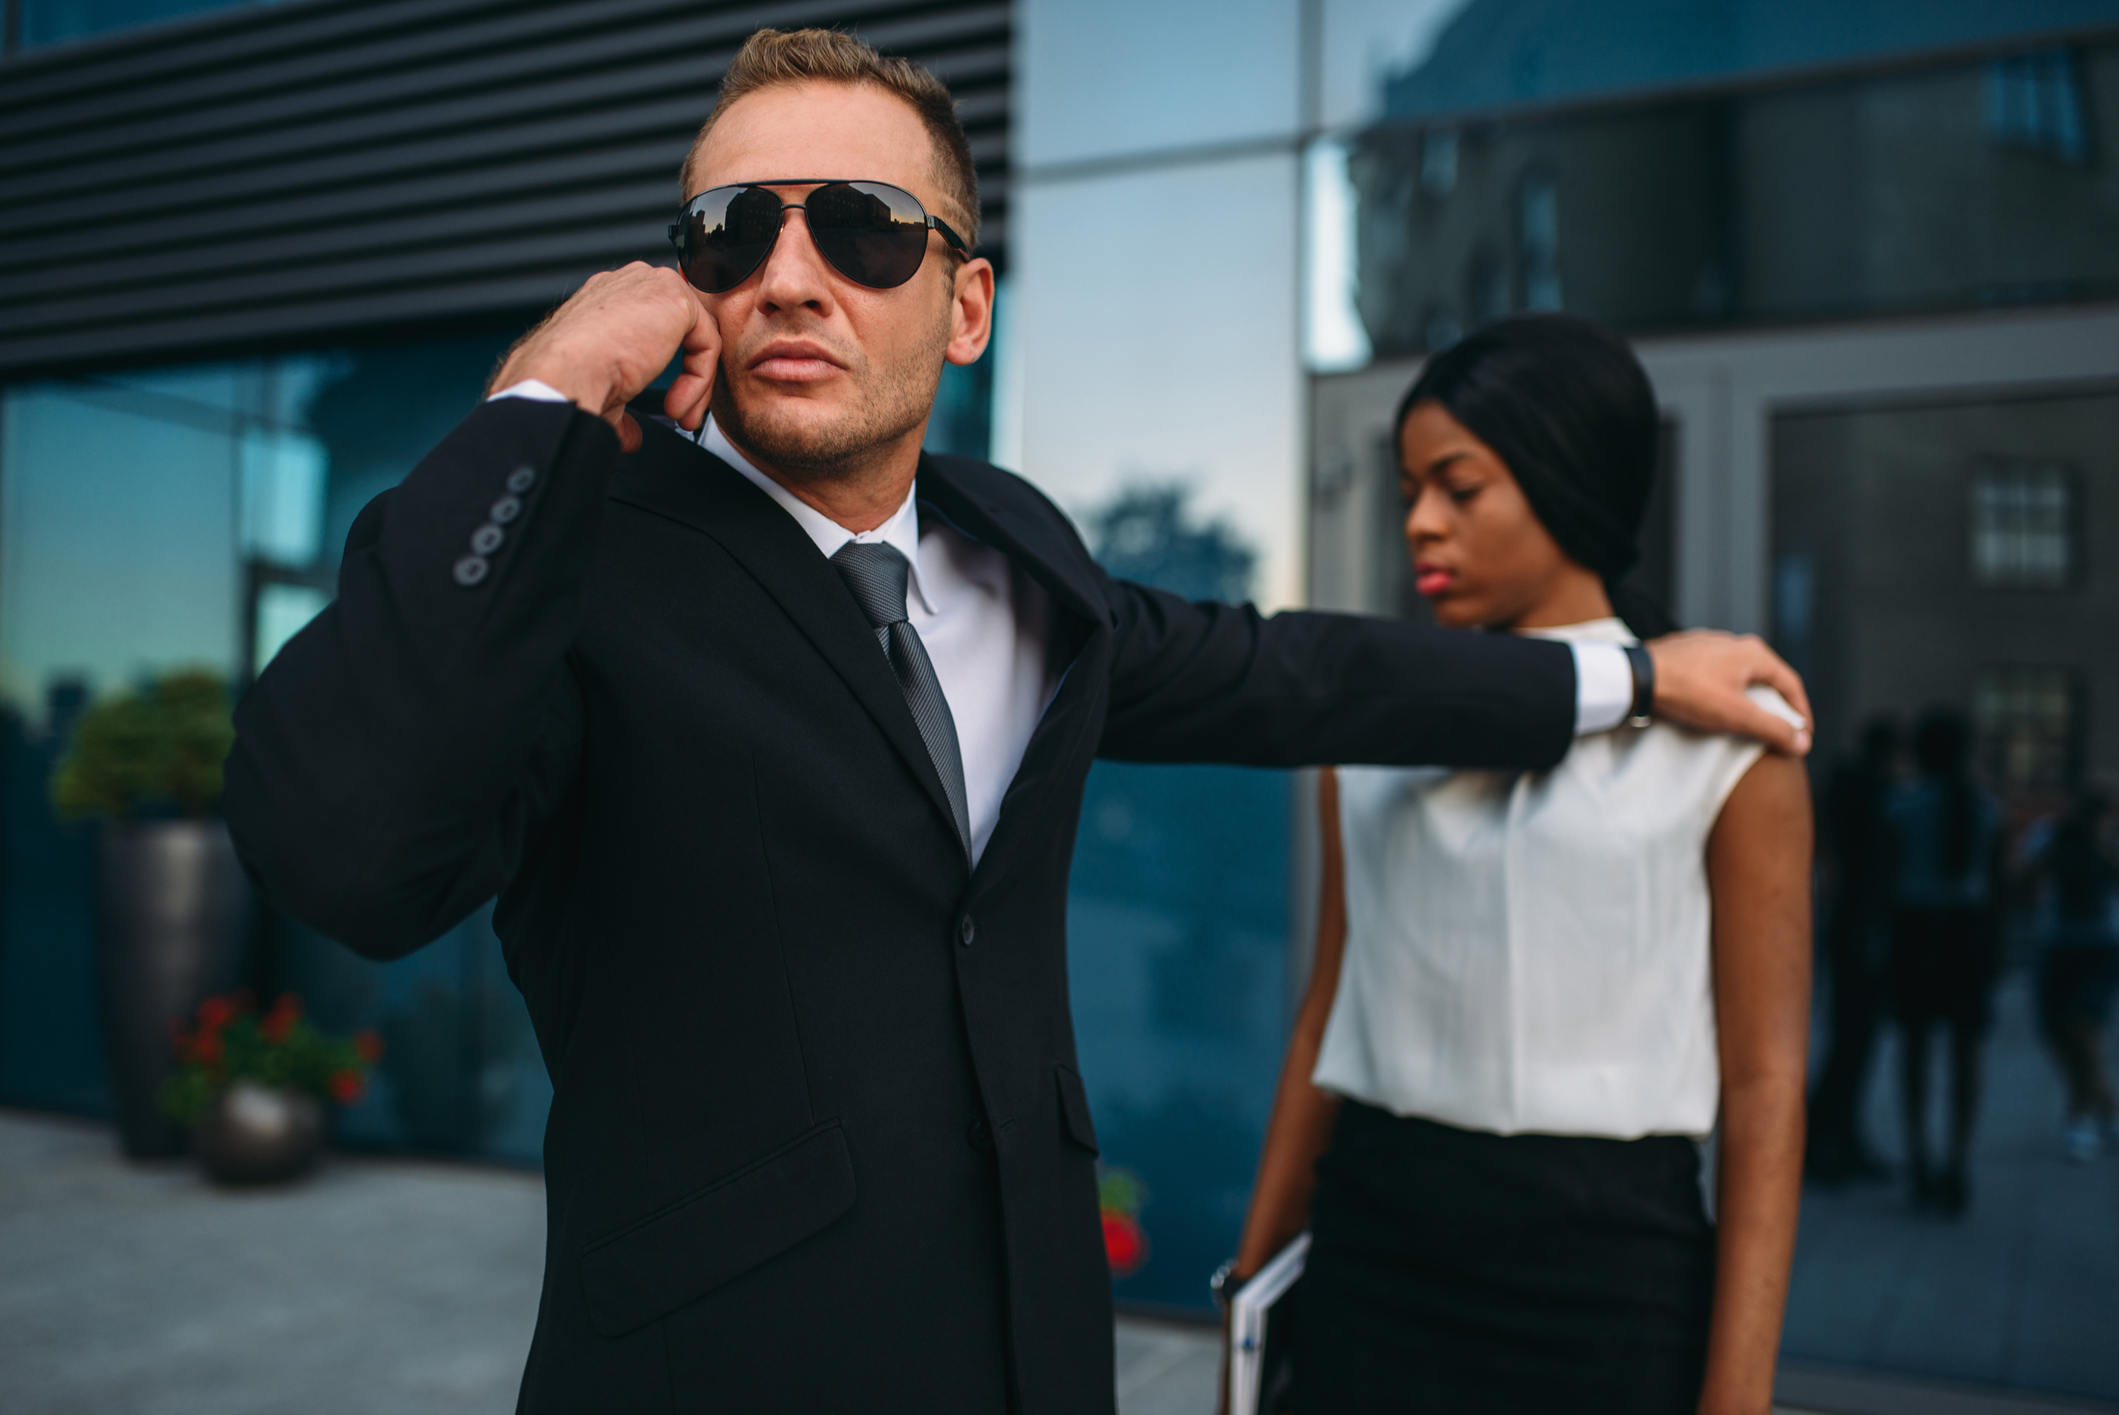 Bodyguard requests support for client protection